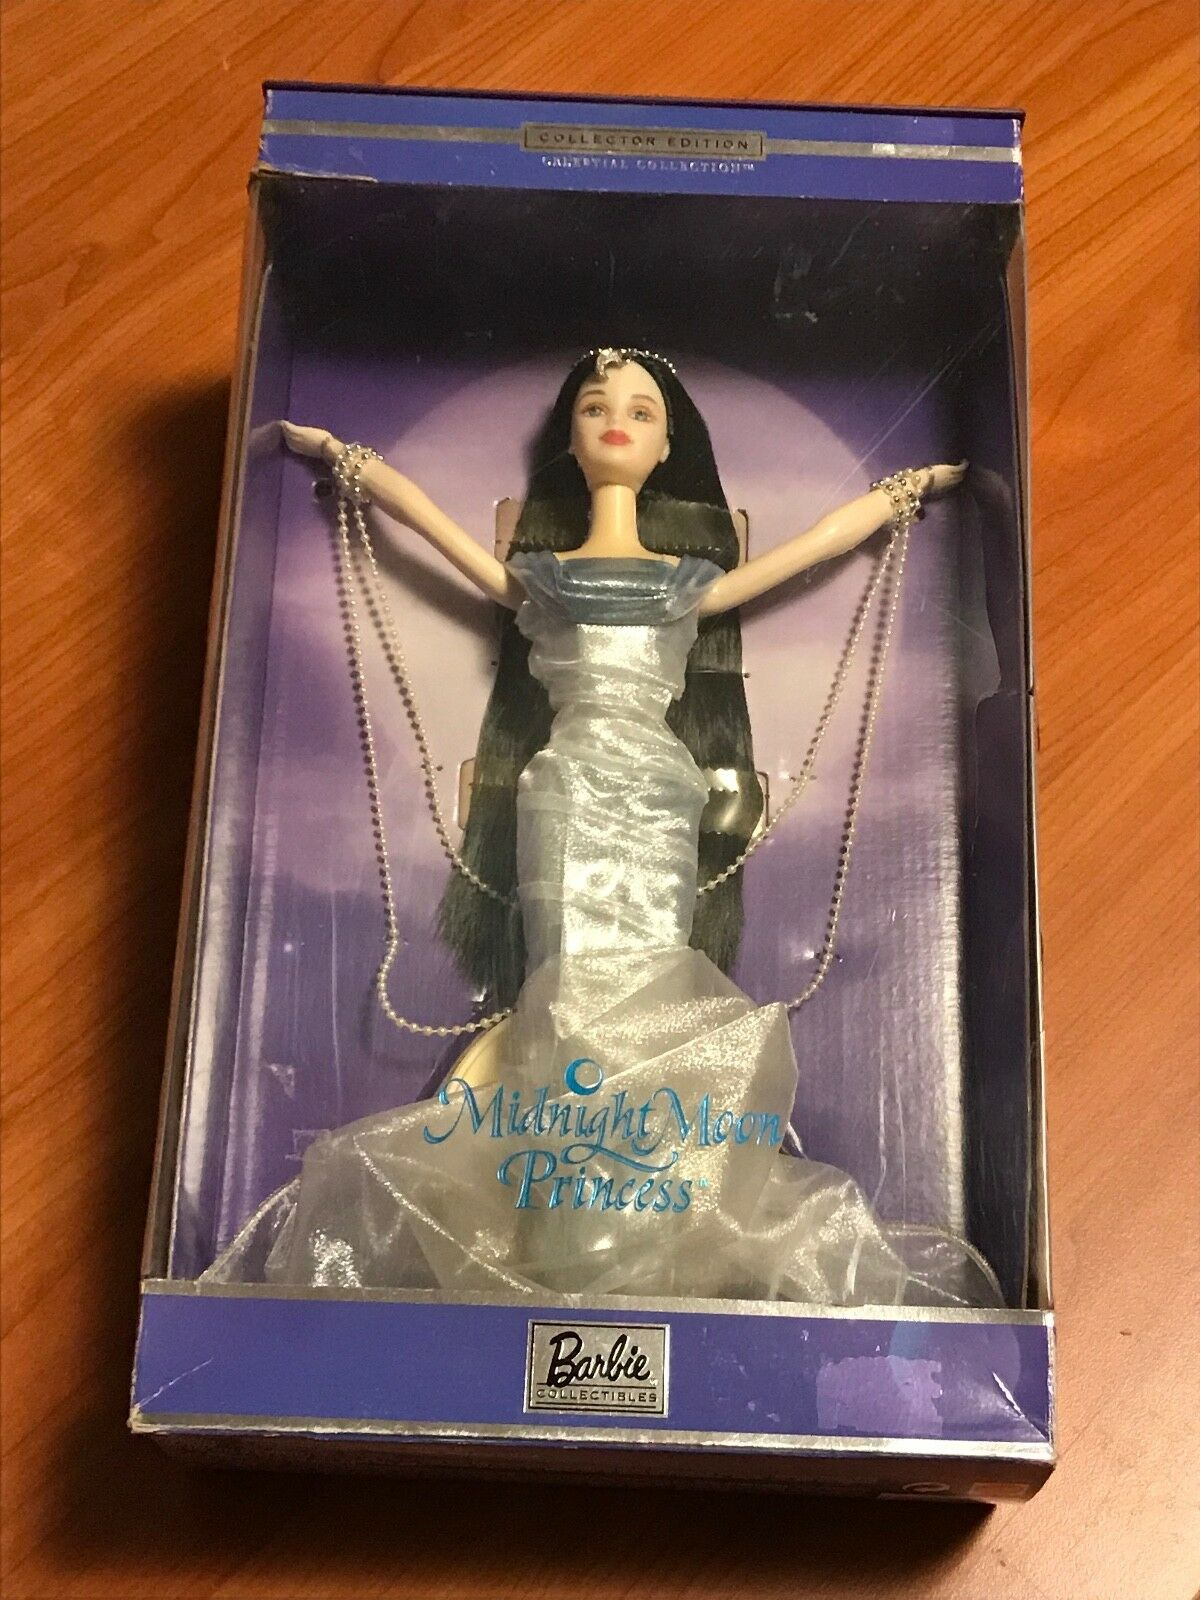 BARBIE MIDNIGHT MOON PRINCESS - CELESTIAL COLLECTION  2000  NRFB